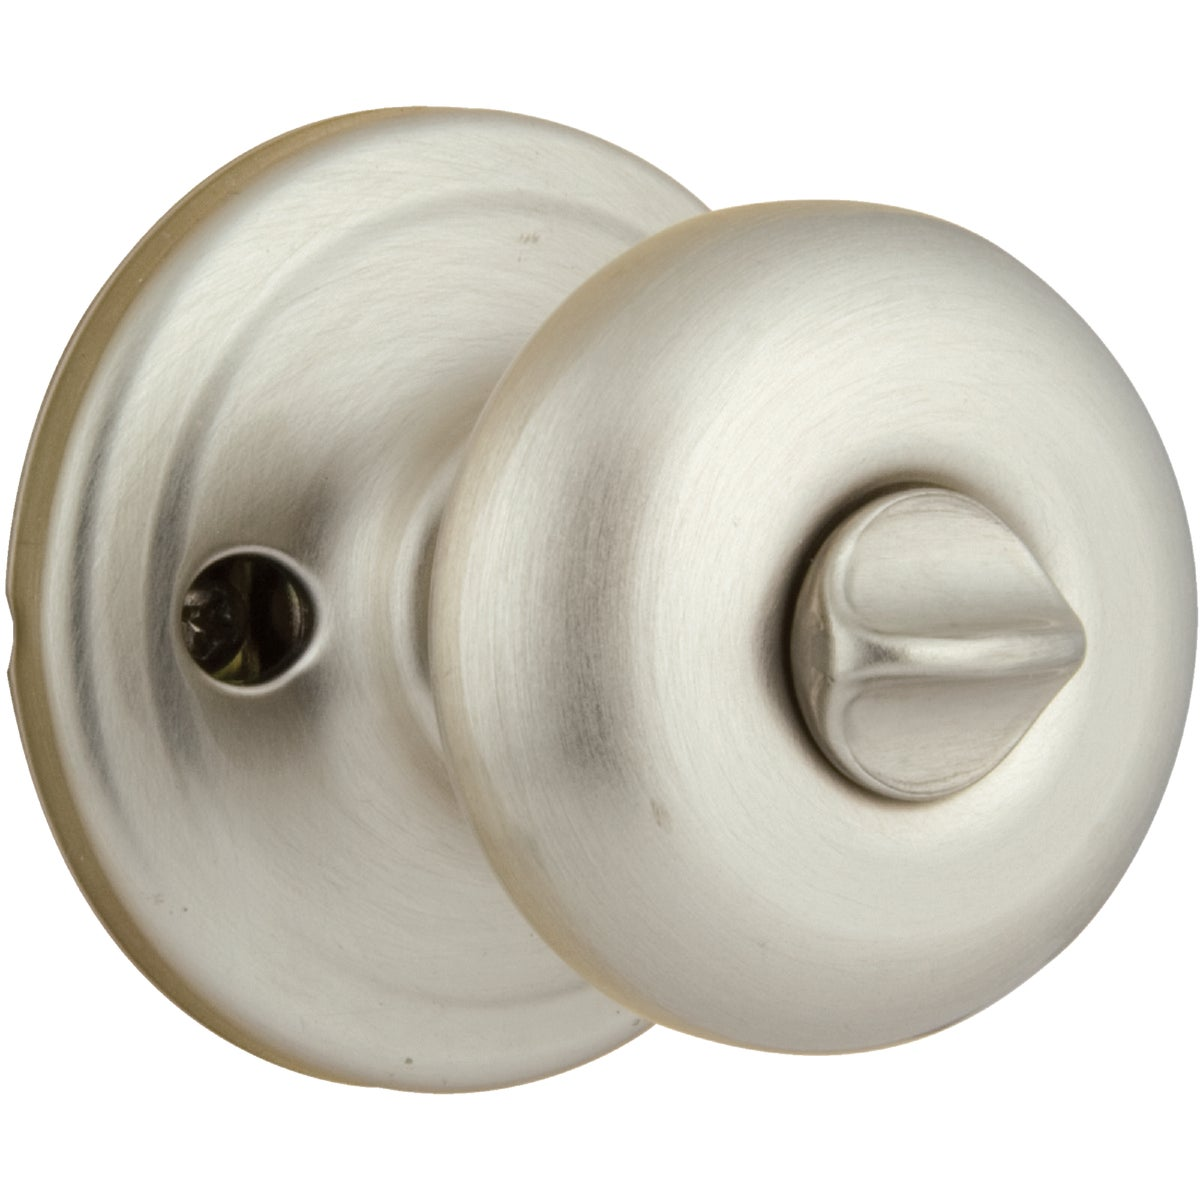 SN JUNO PRIVACY KNOB - 730J 15 CP by Kwikset